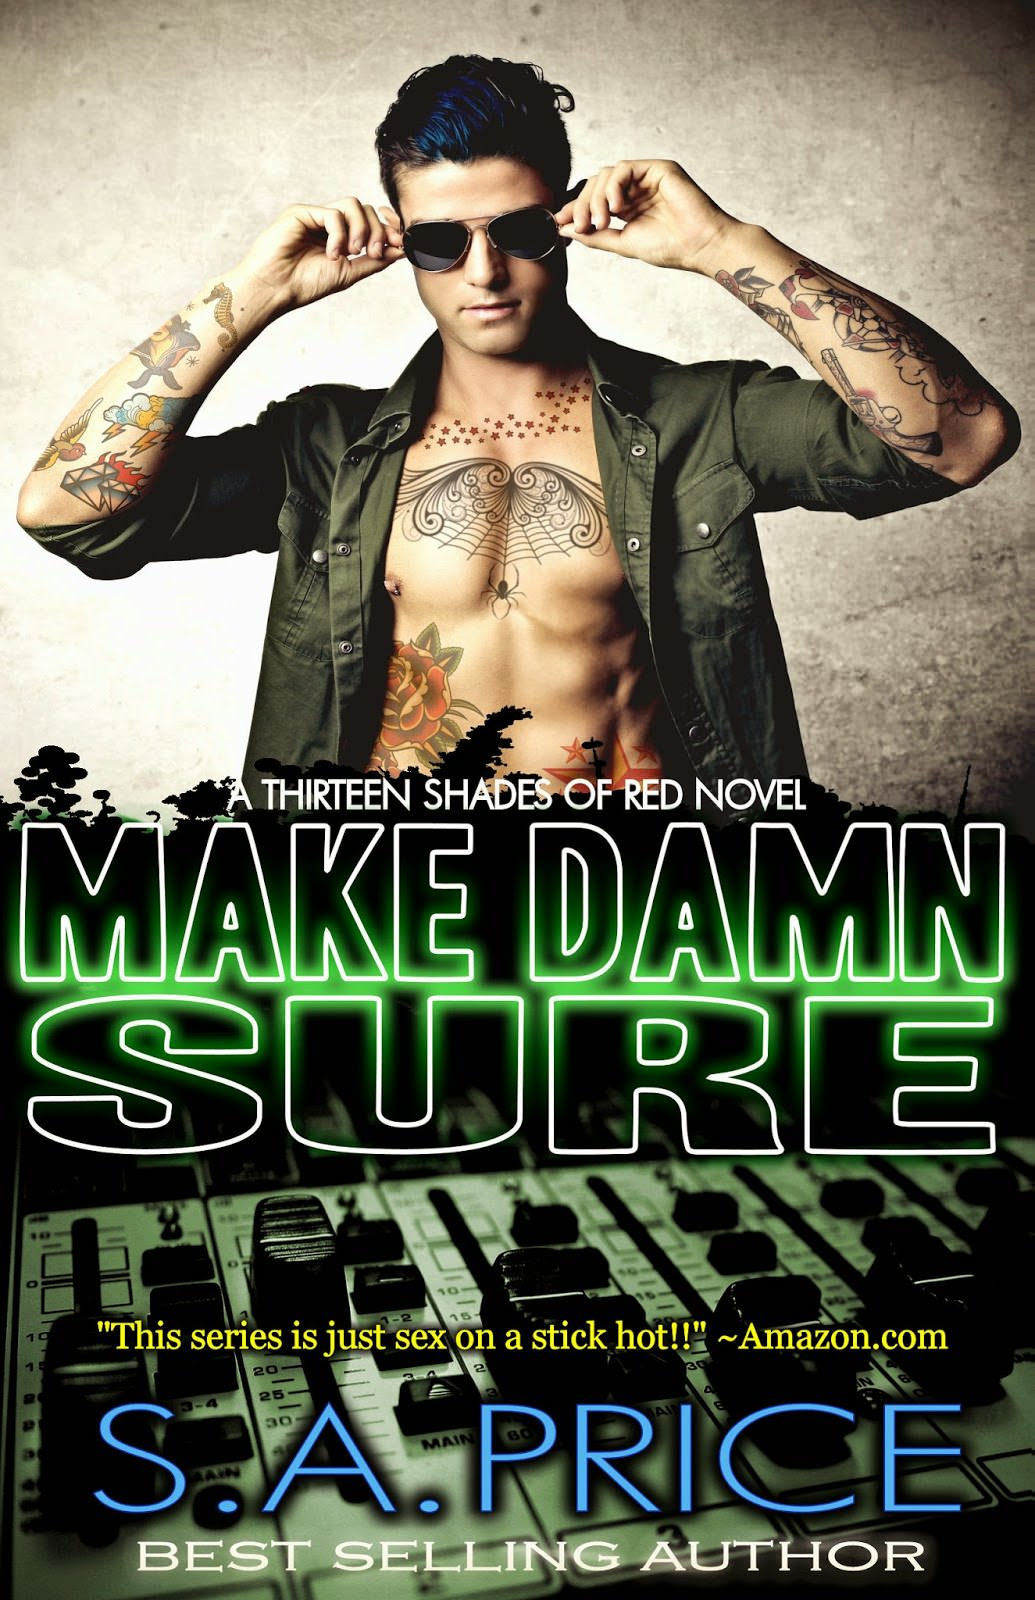 Make Damn Sure by S.A. Price cover reveal